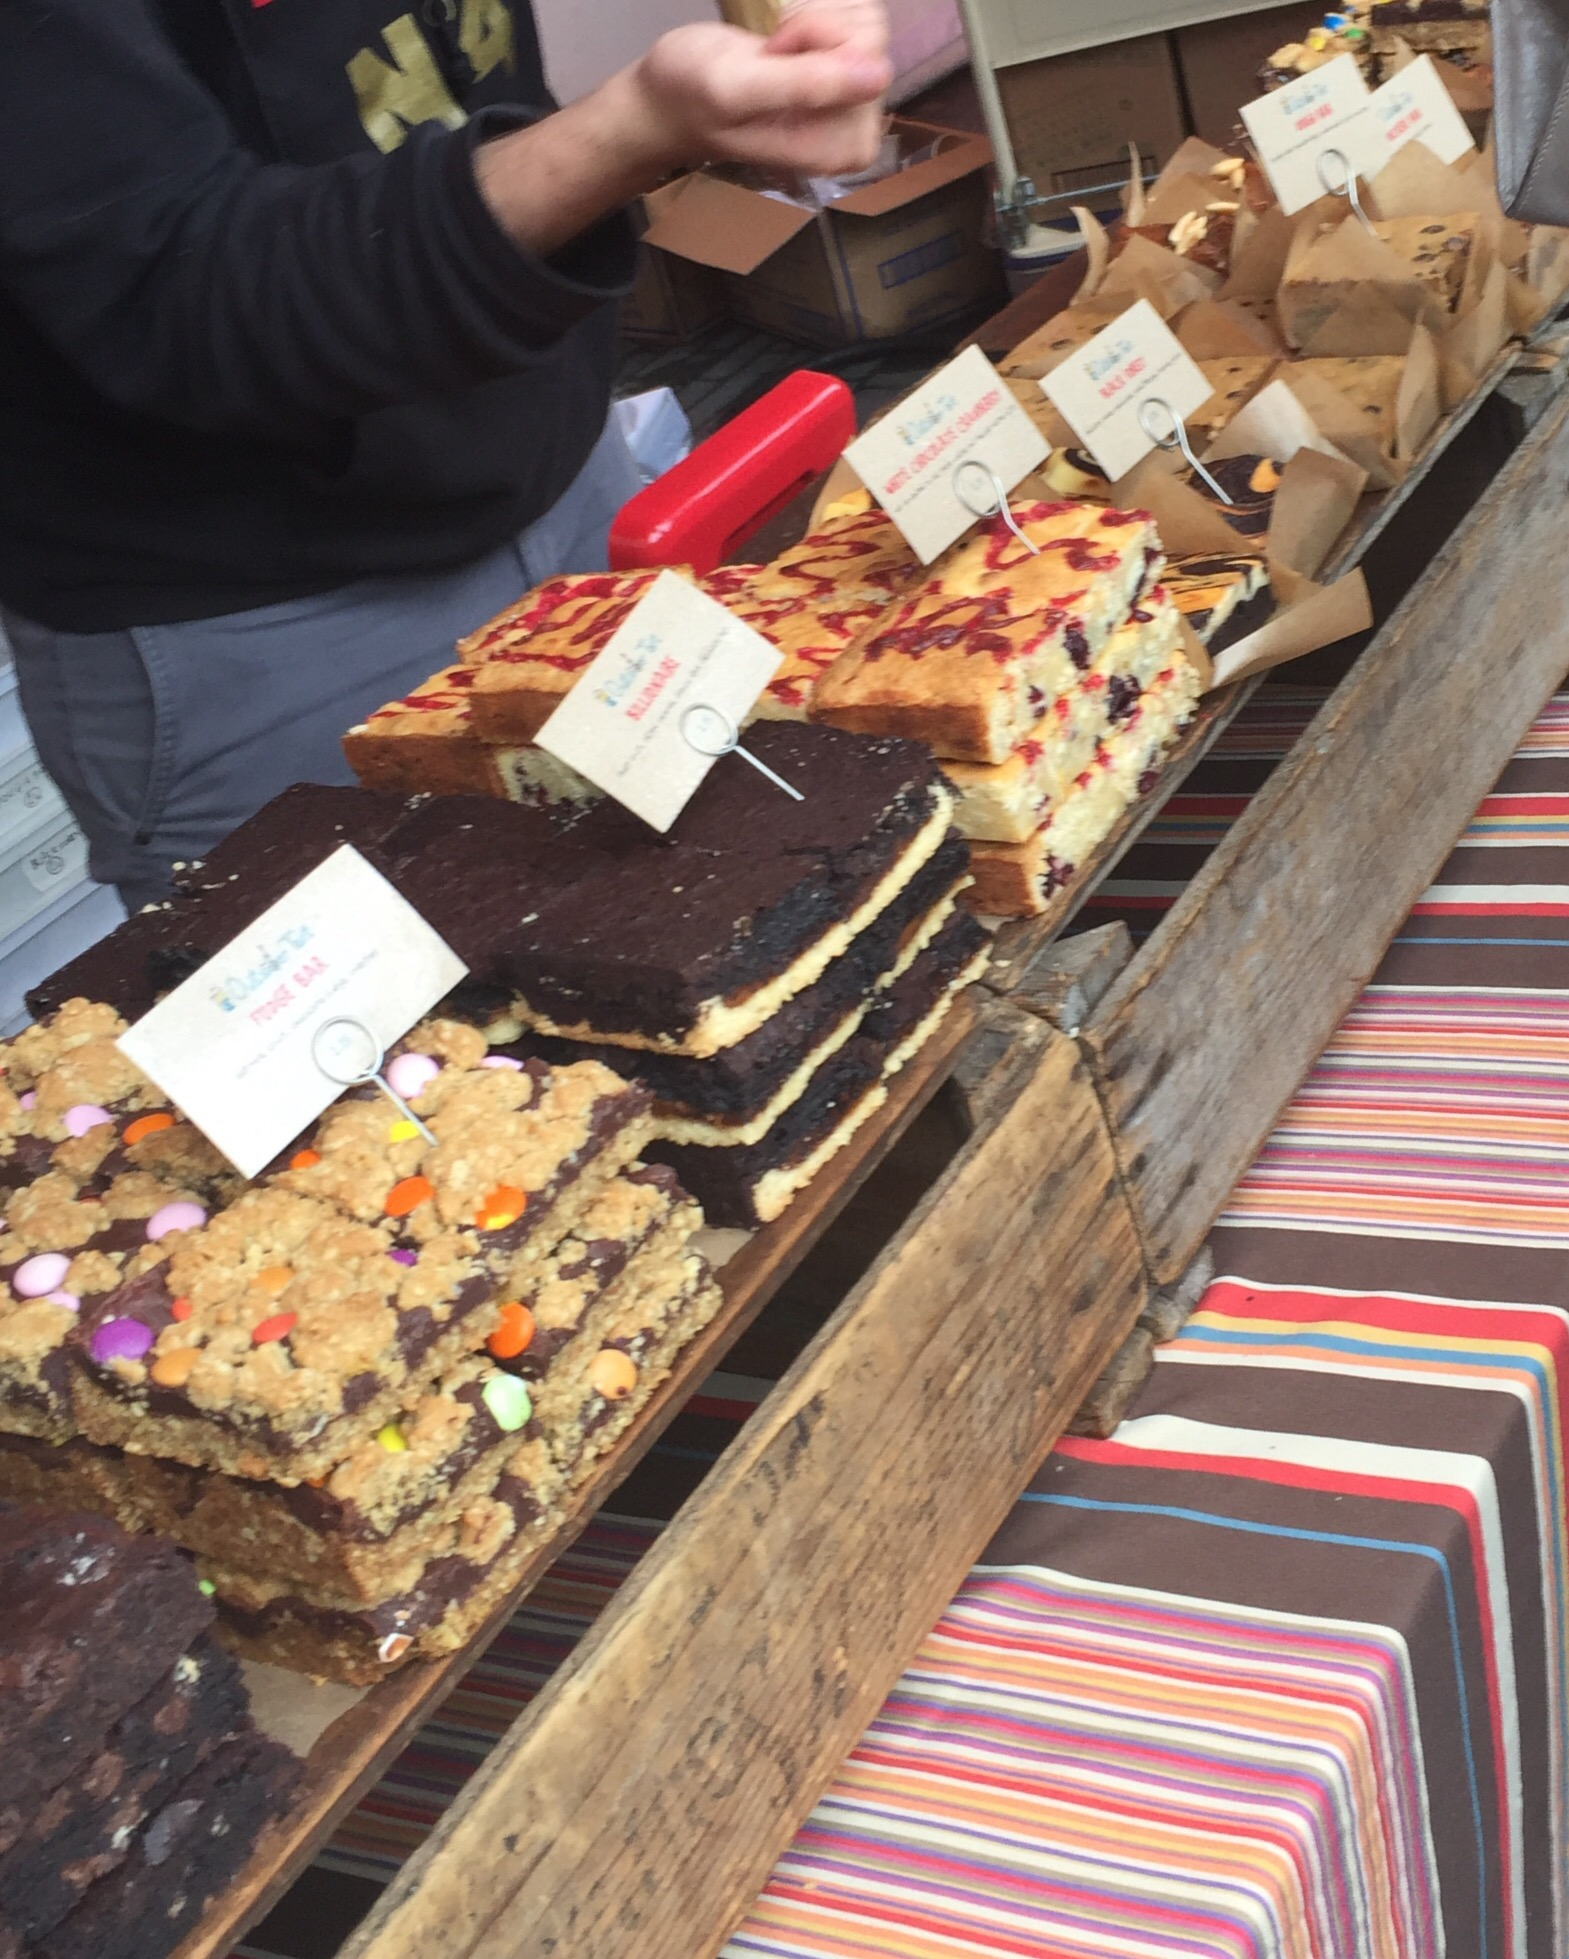 cakes at southbank centre food market